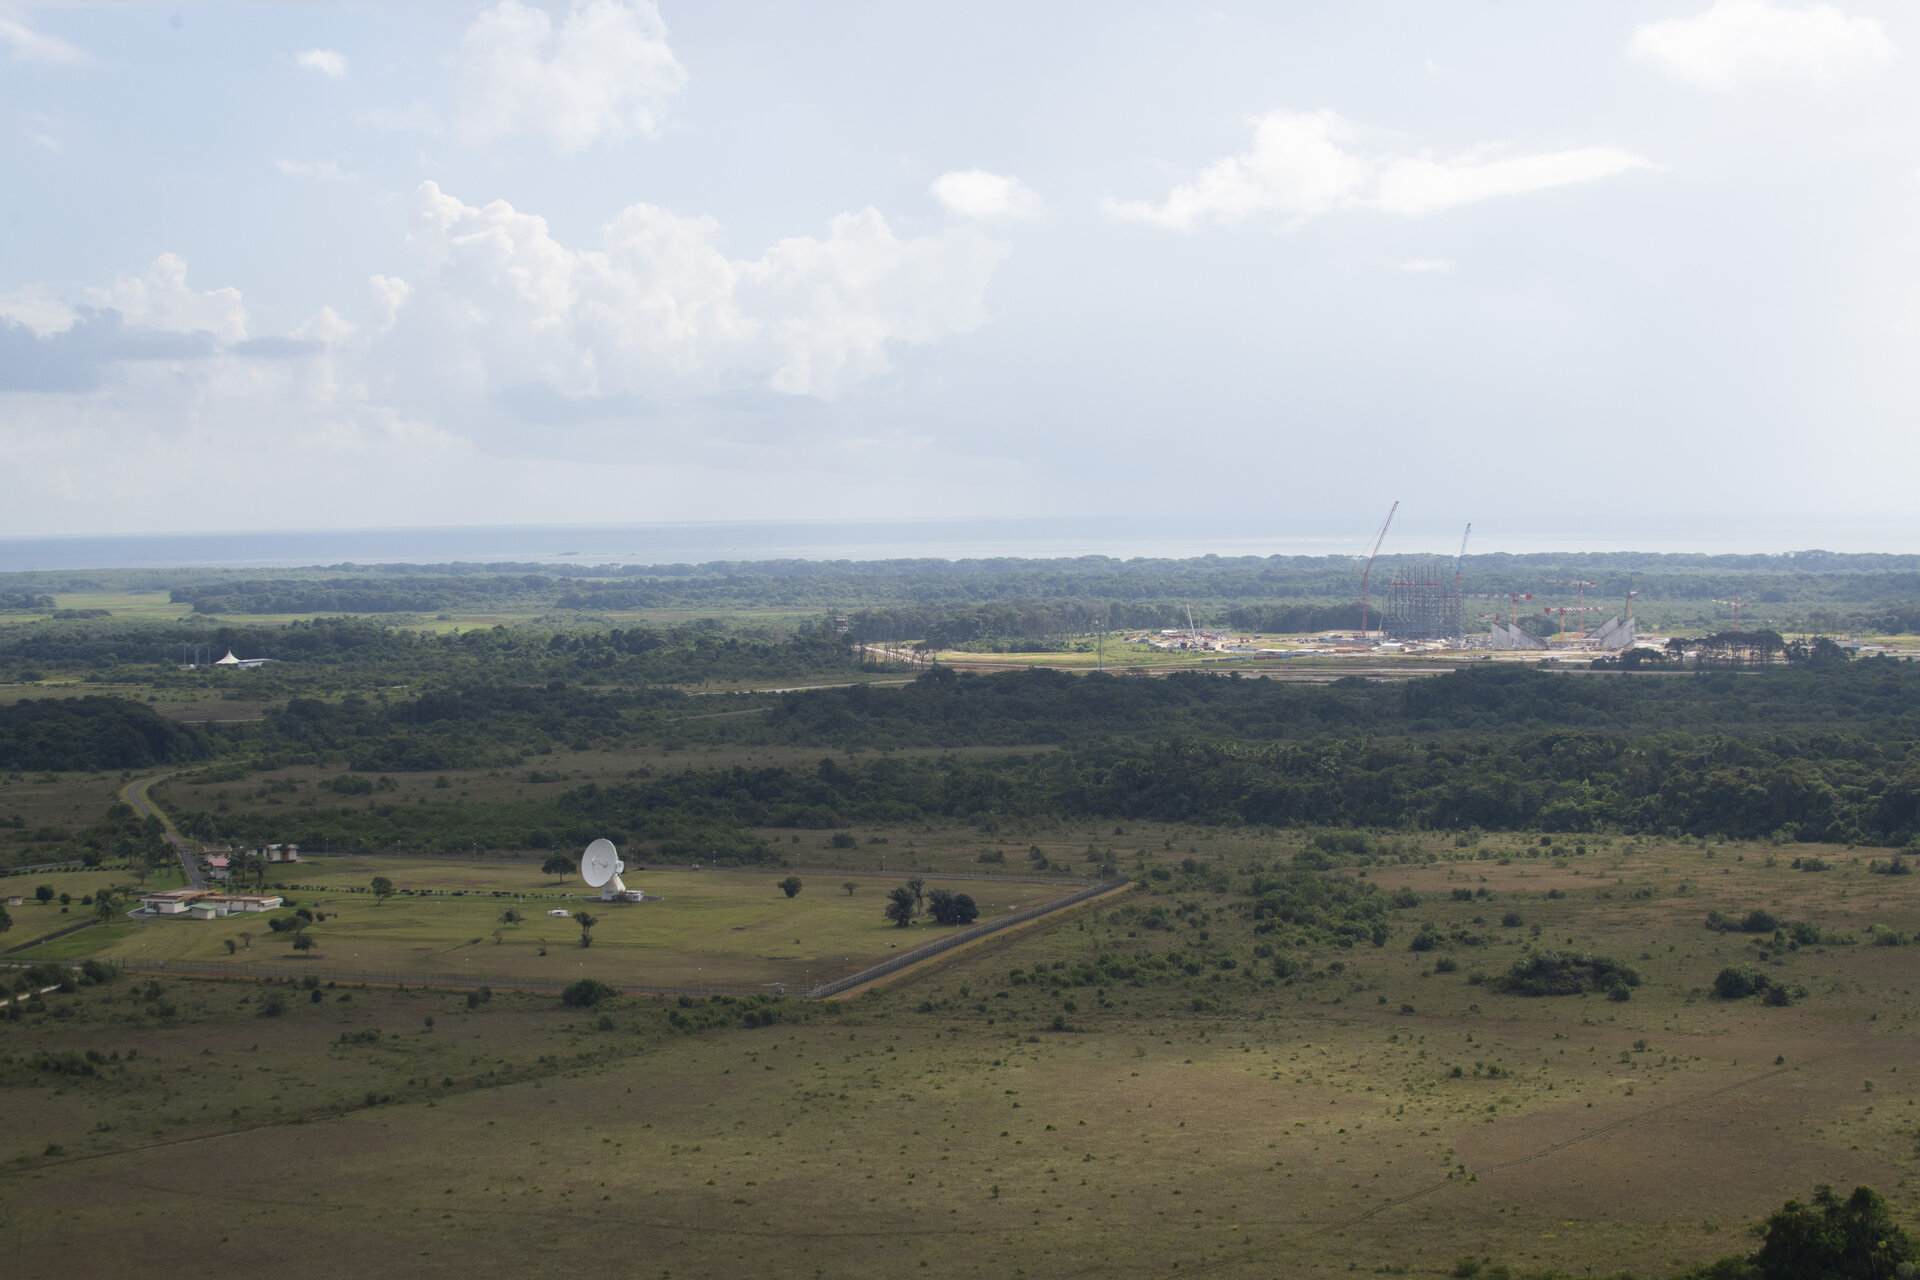 ESA's Diane station in Kourou, French Guiana